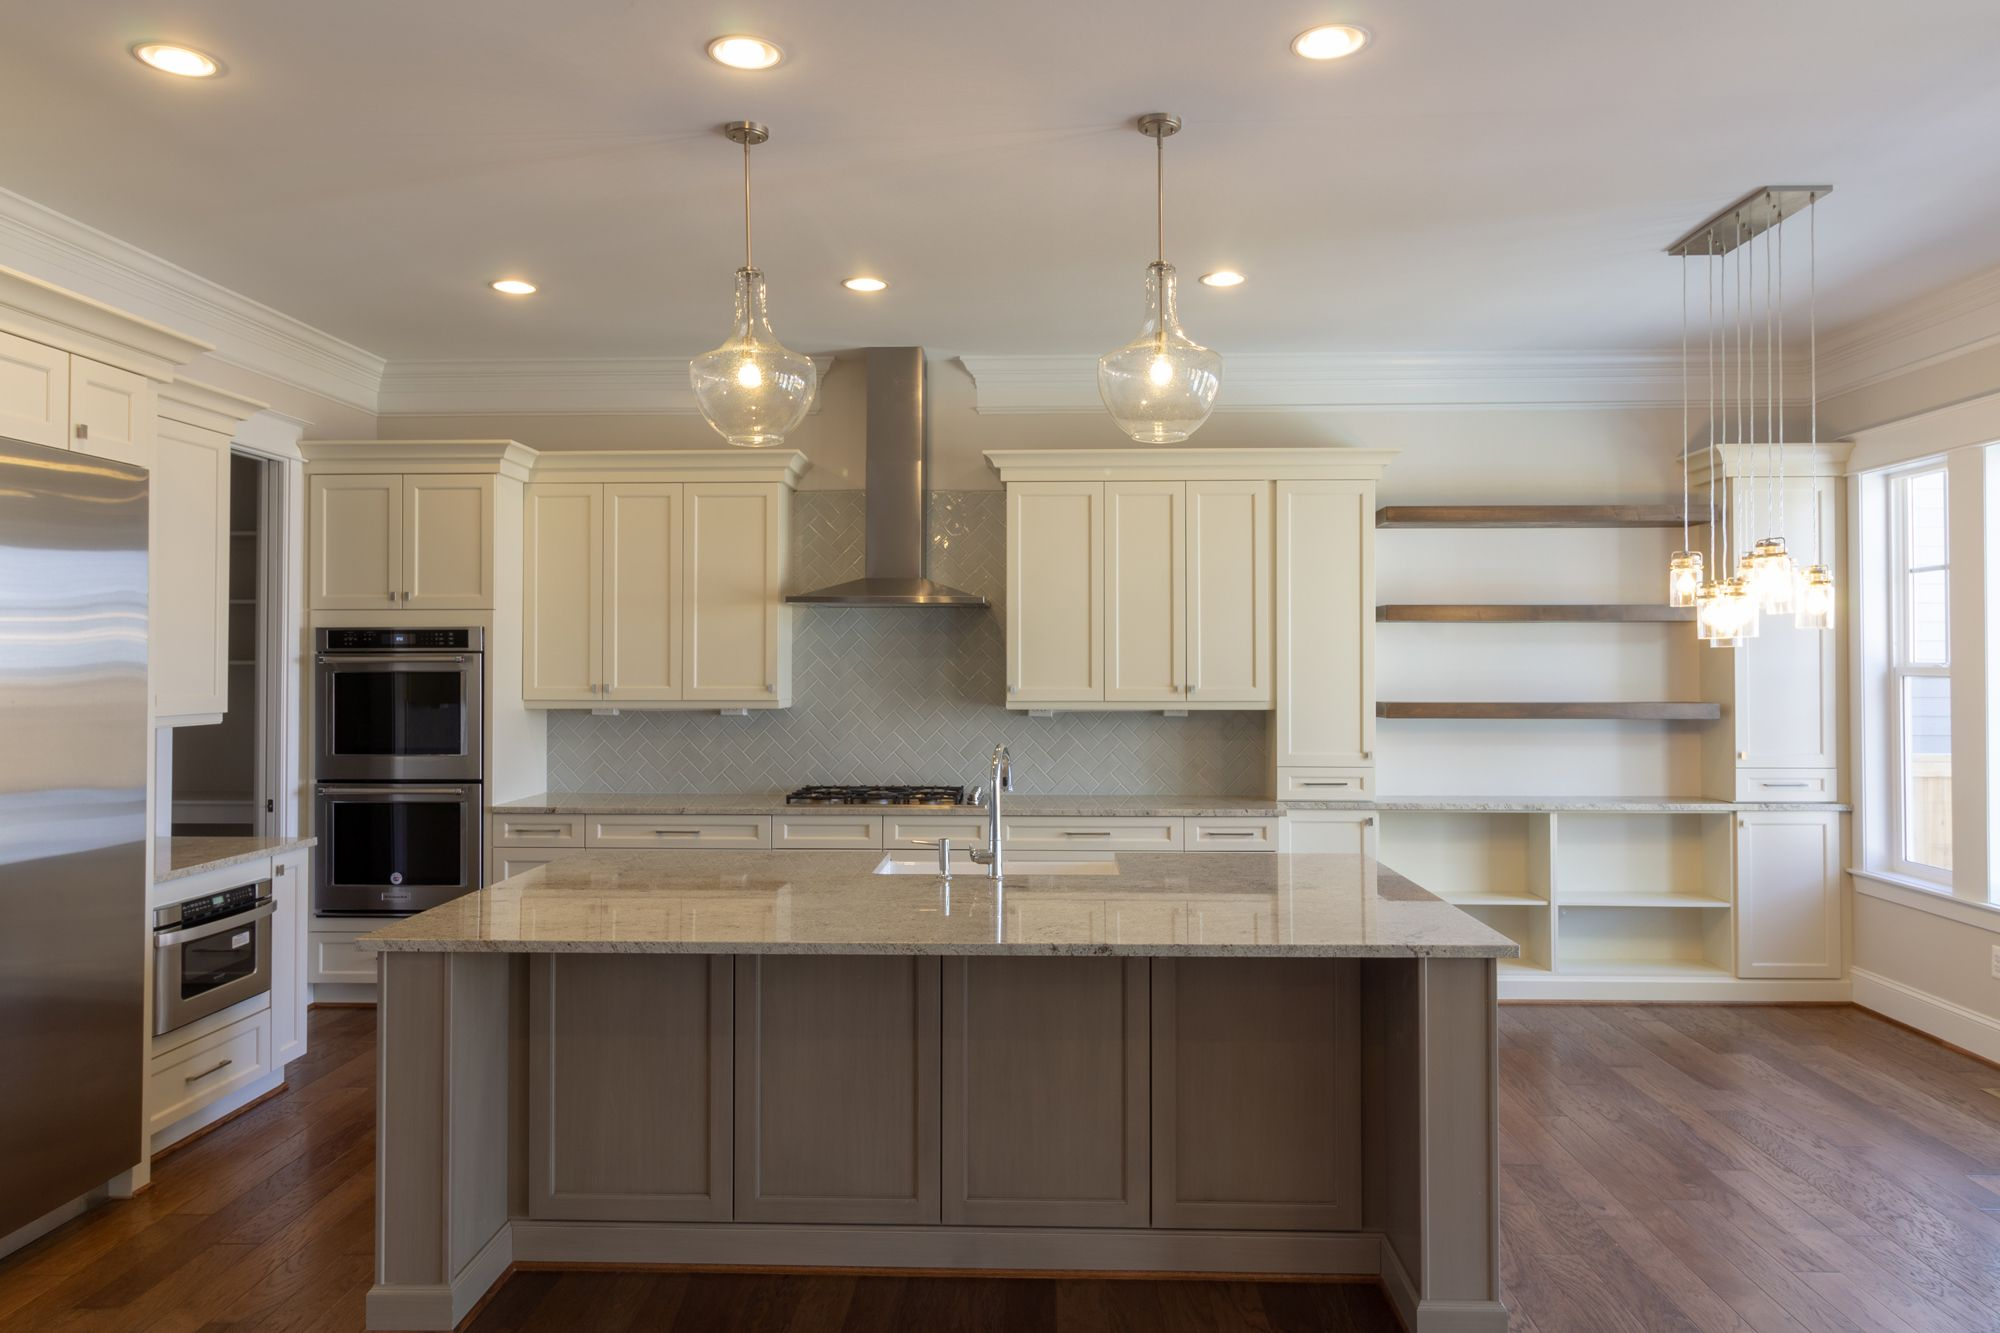 Kitchen featured in The Arlington - Shenandoah Collection By Parkwood Homes in Denver, CO